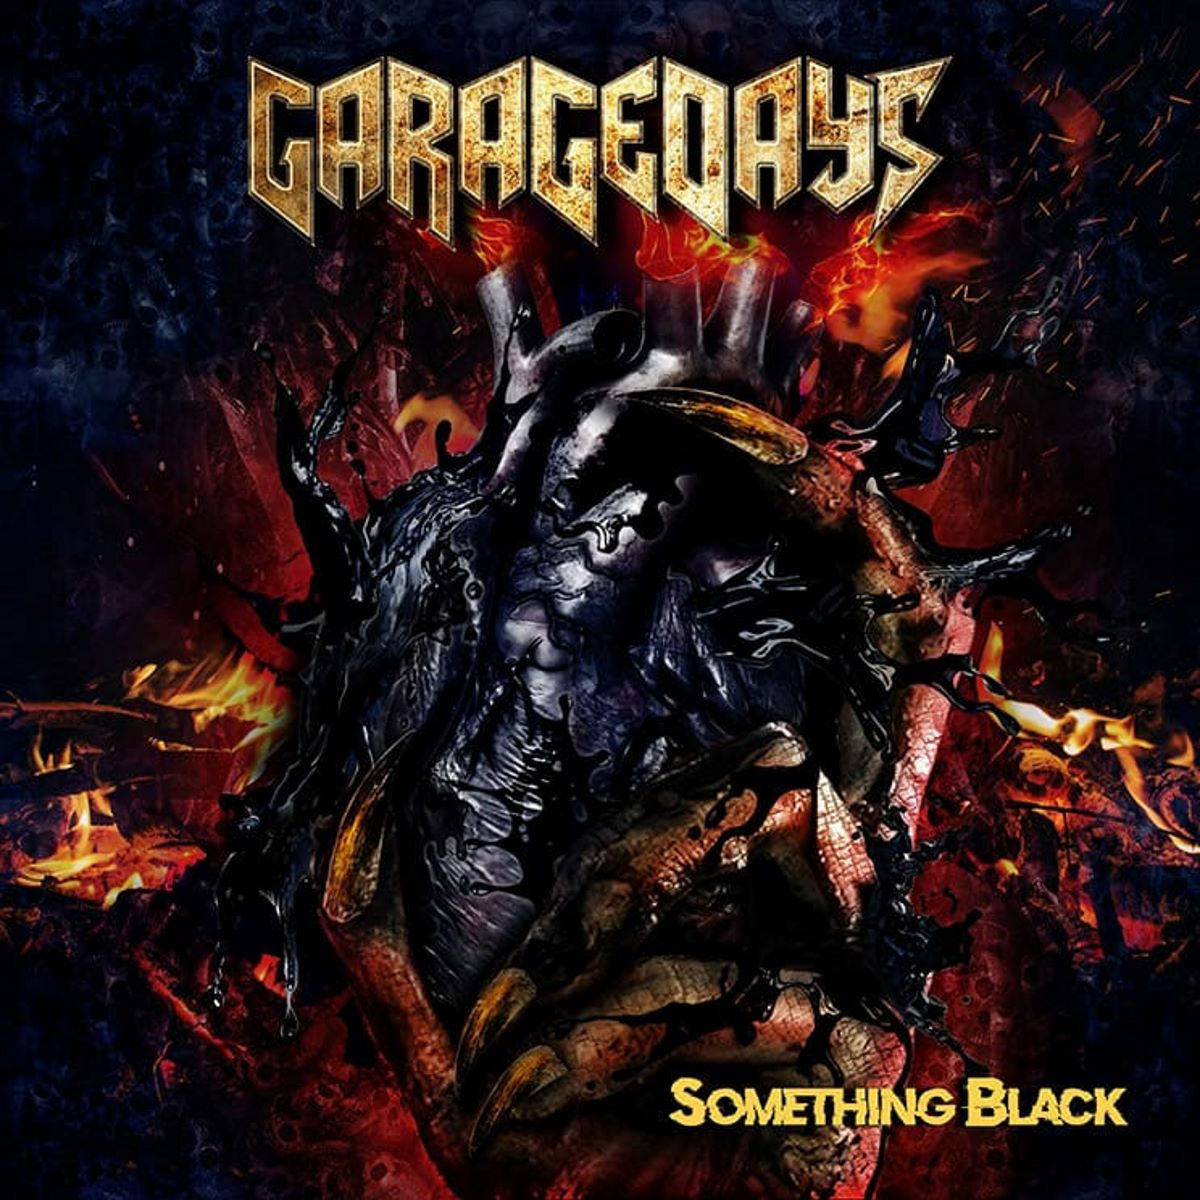 garagedays - something black - album cover